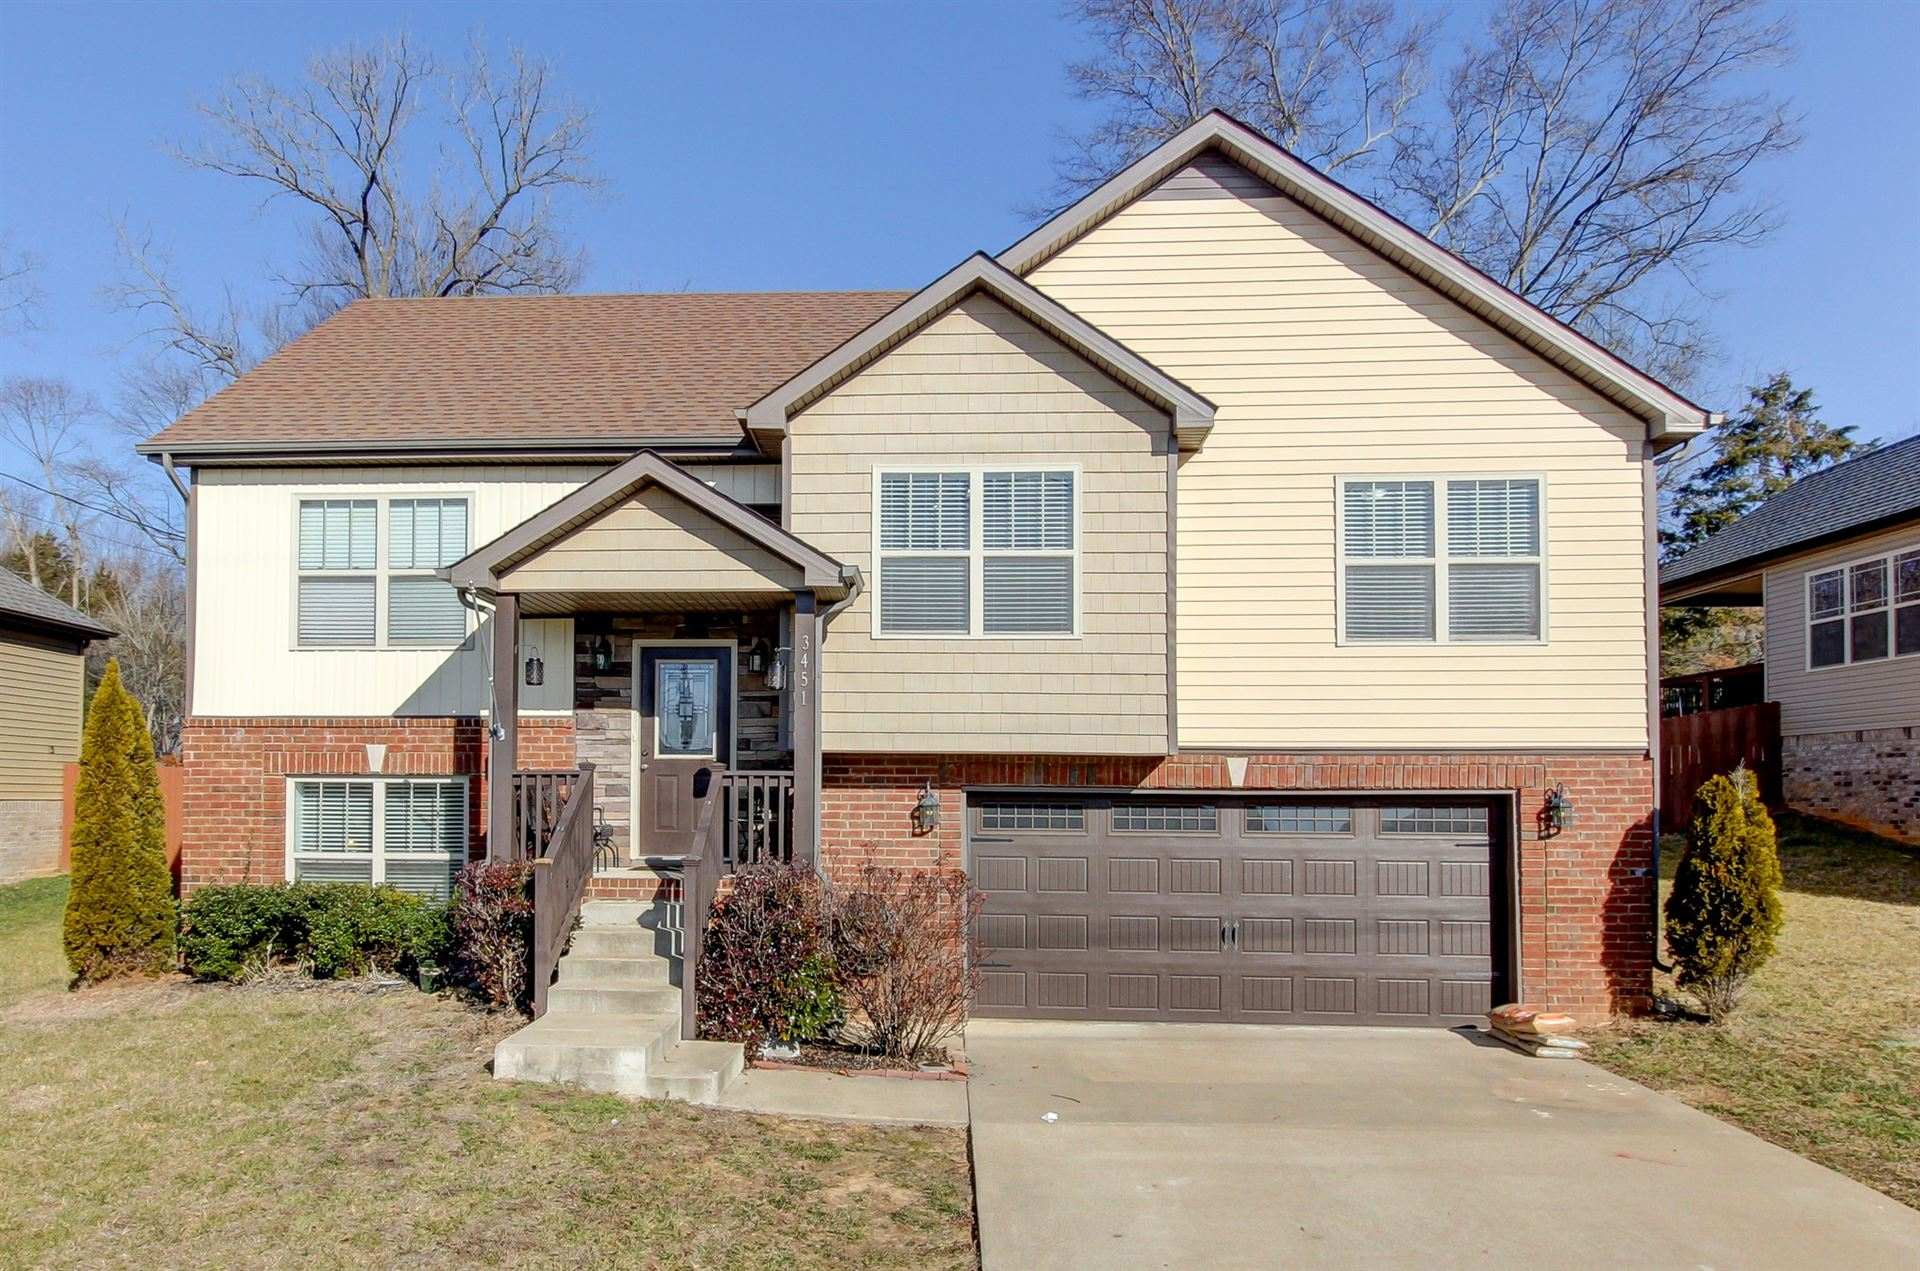 3451 Bradfield Dr, Clarksville, TN 37042 - MLS#: 2222116